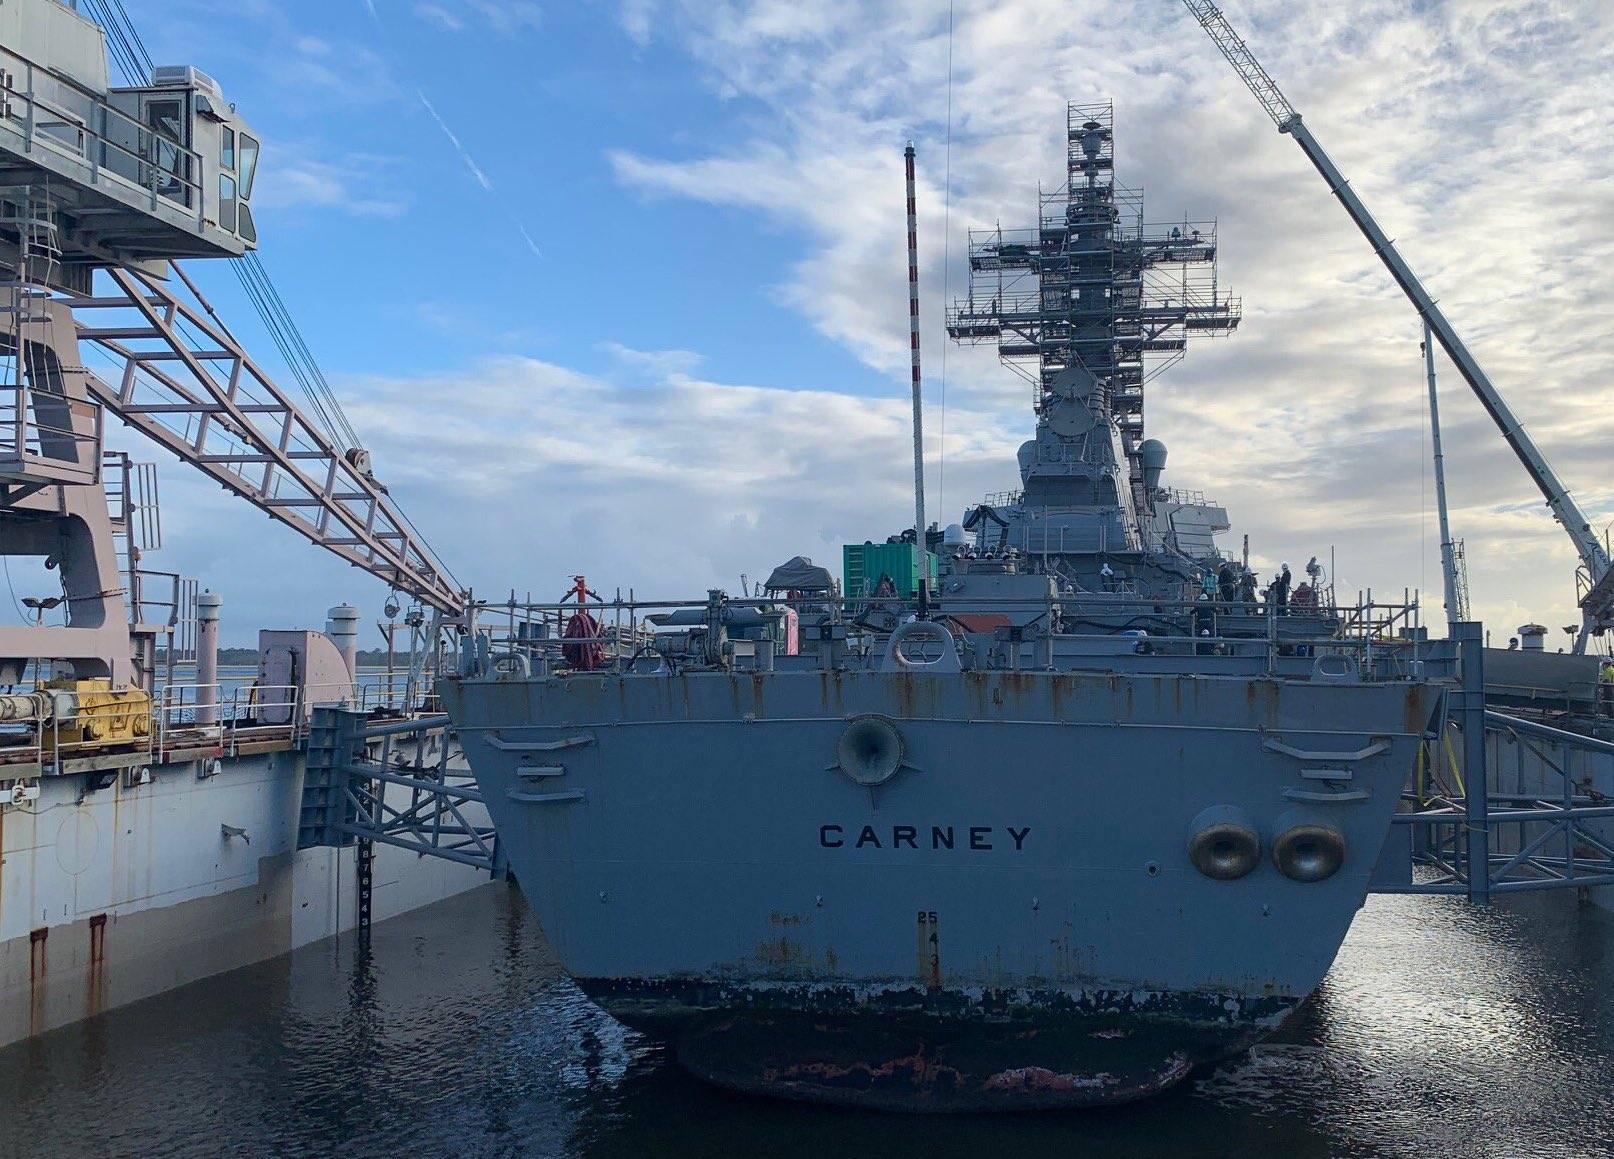 Through one of its research projects, NAVSEA aims to reduce the amount of time ships spend under maintenance. Photo via NAVSEA.